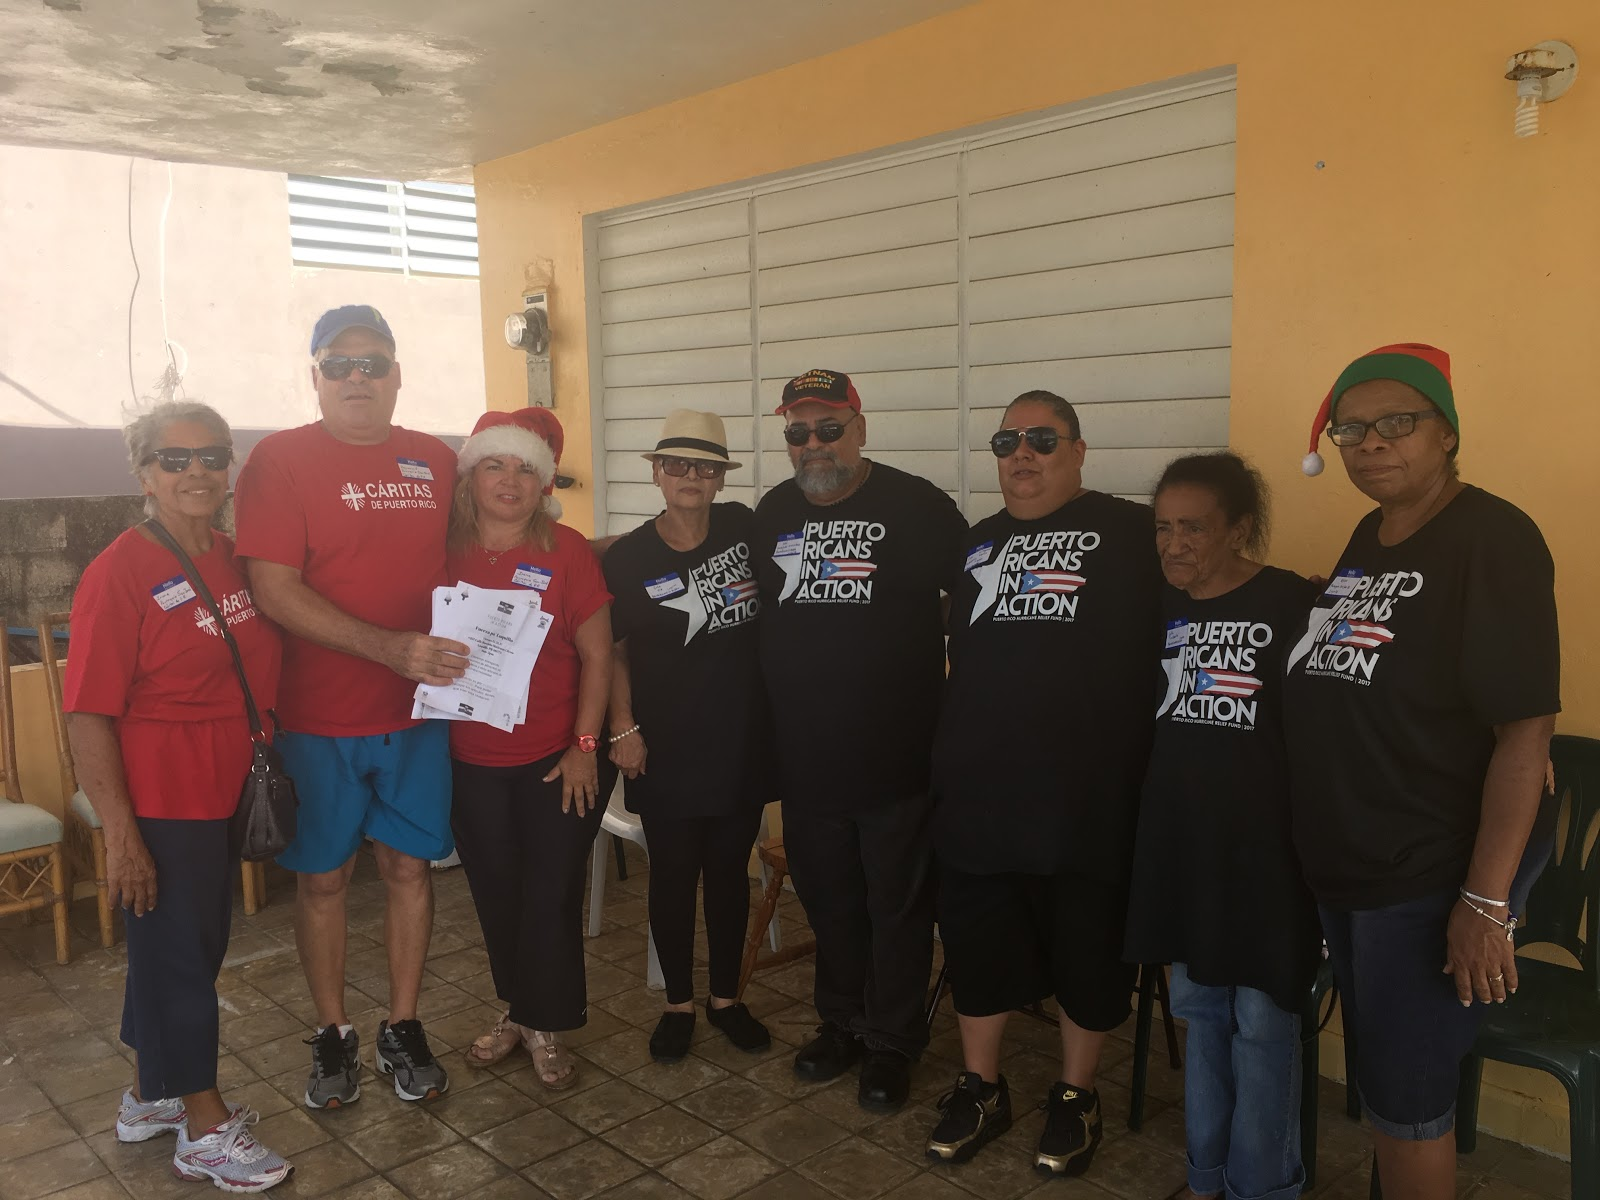 """""""Fuerza pa' Luquillo"""" - On Dec 2017, The Luquillo community, Parroquia San José de Luquillo, and Cáritas Puerto Rico helped coordinate the event and put together volunteers in passing out supplies and help bring the community together."""